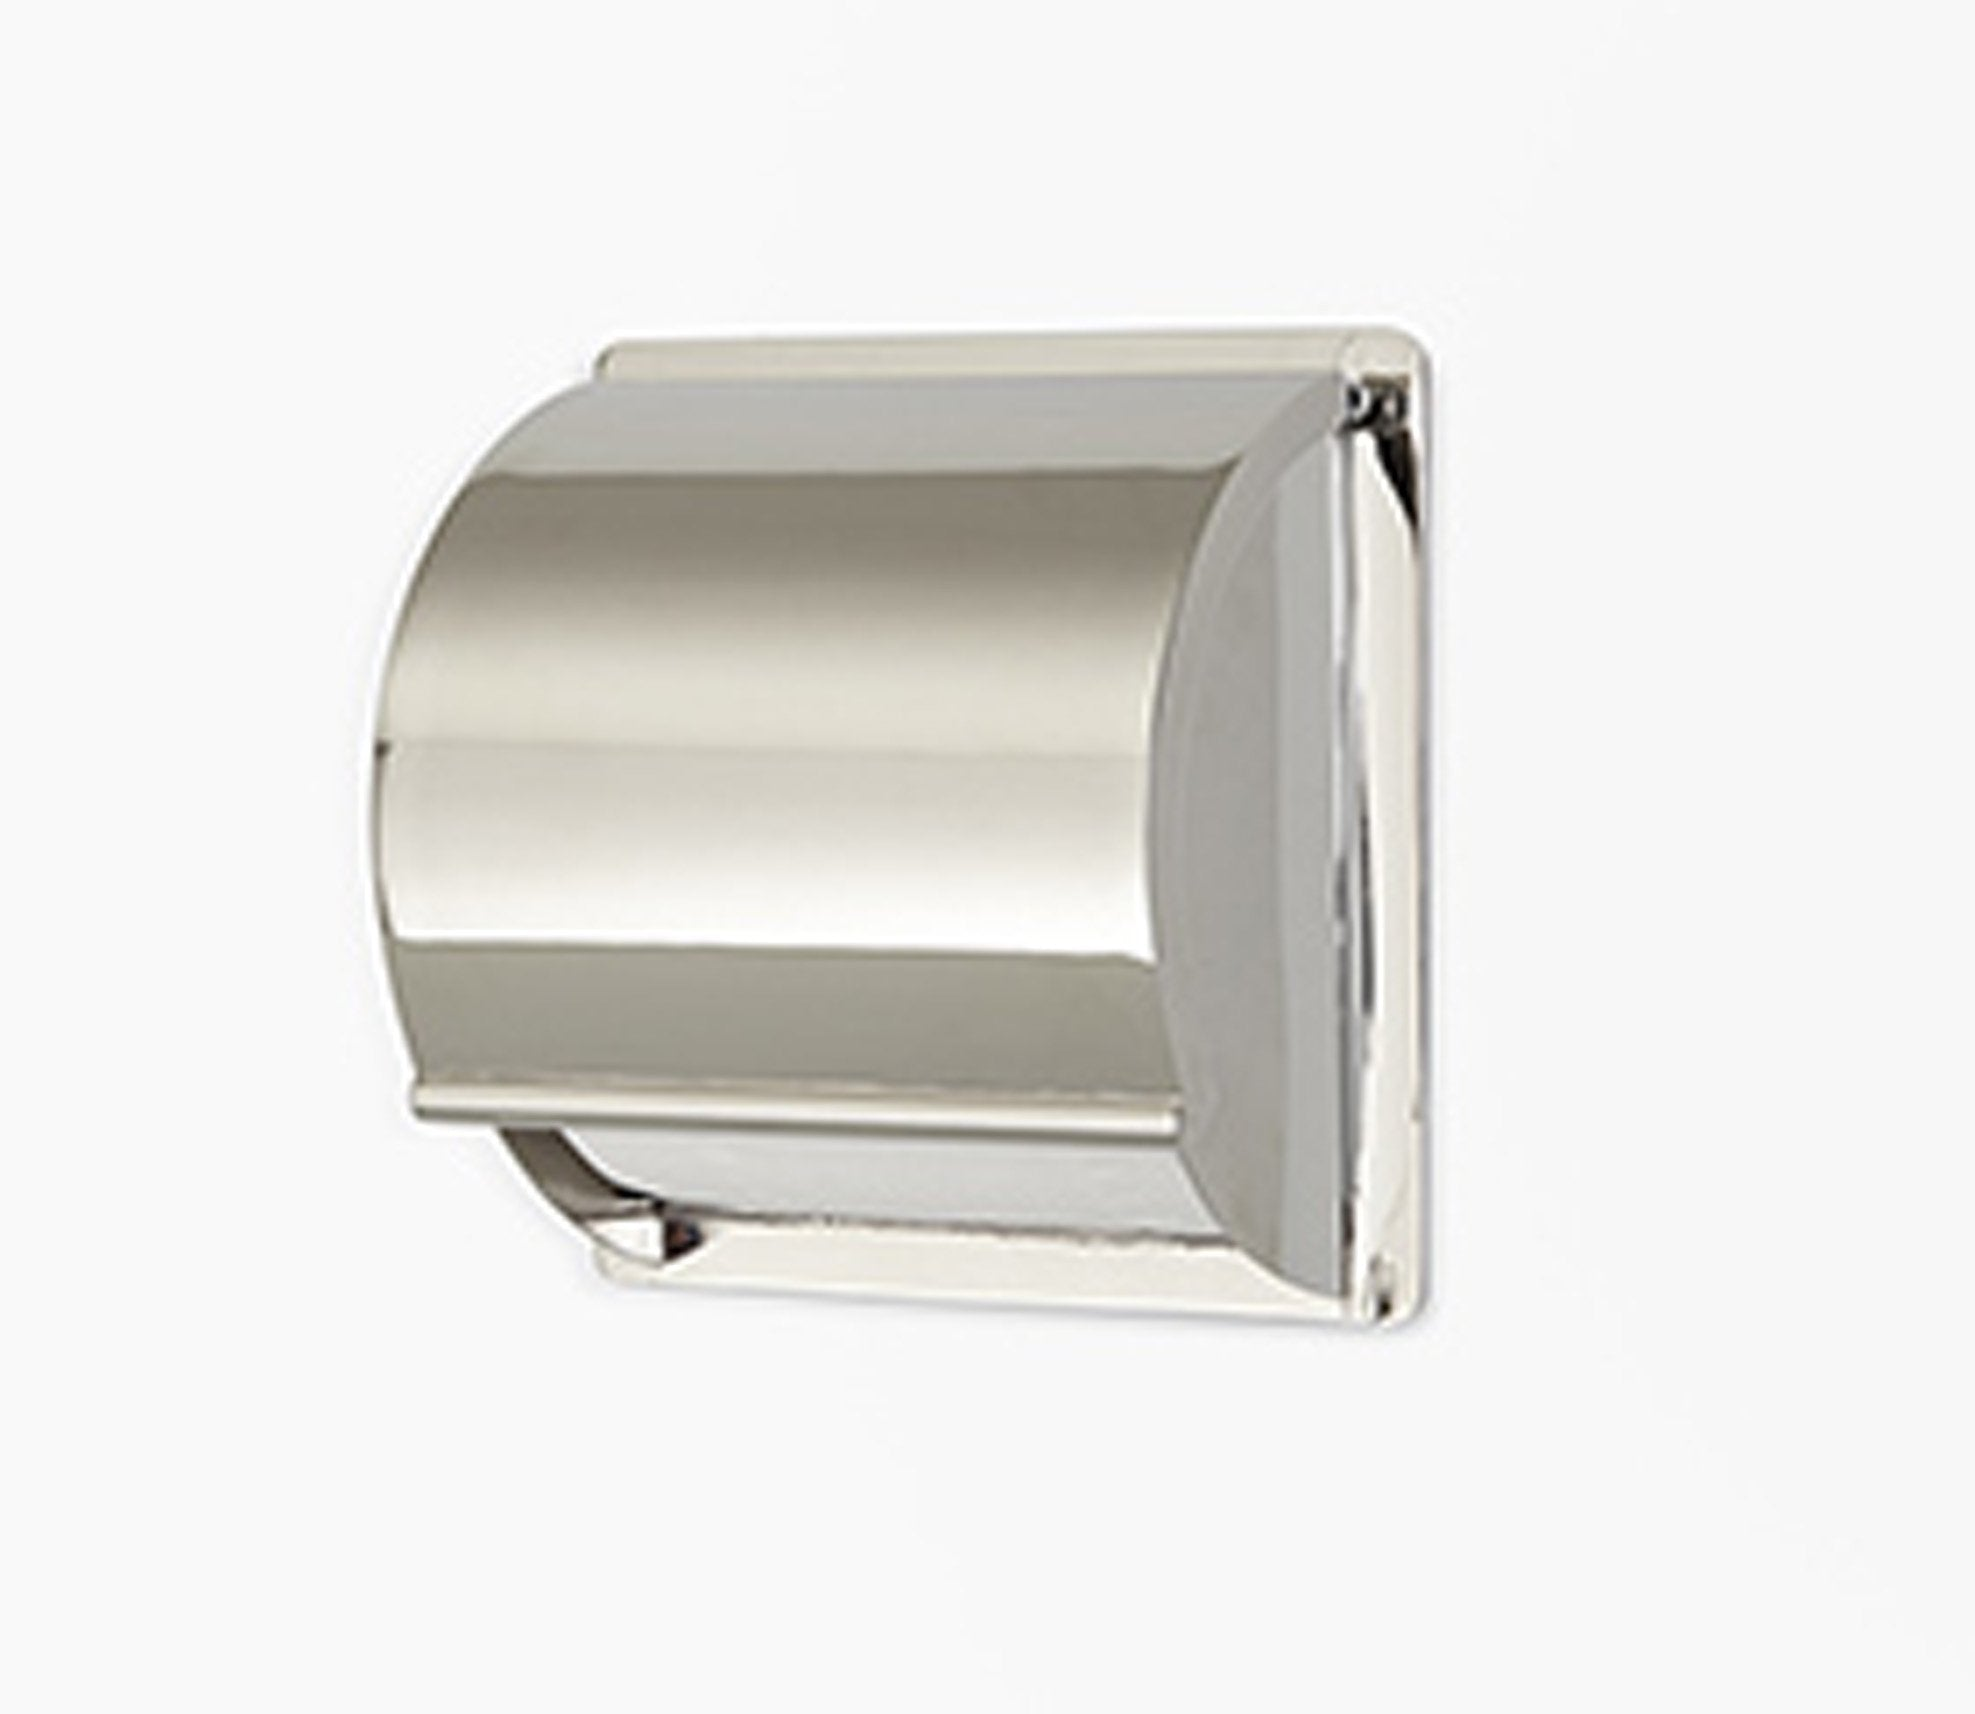 Wall Recessed Toilet Paper Holder Product Image 1